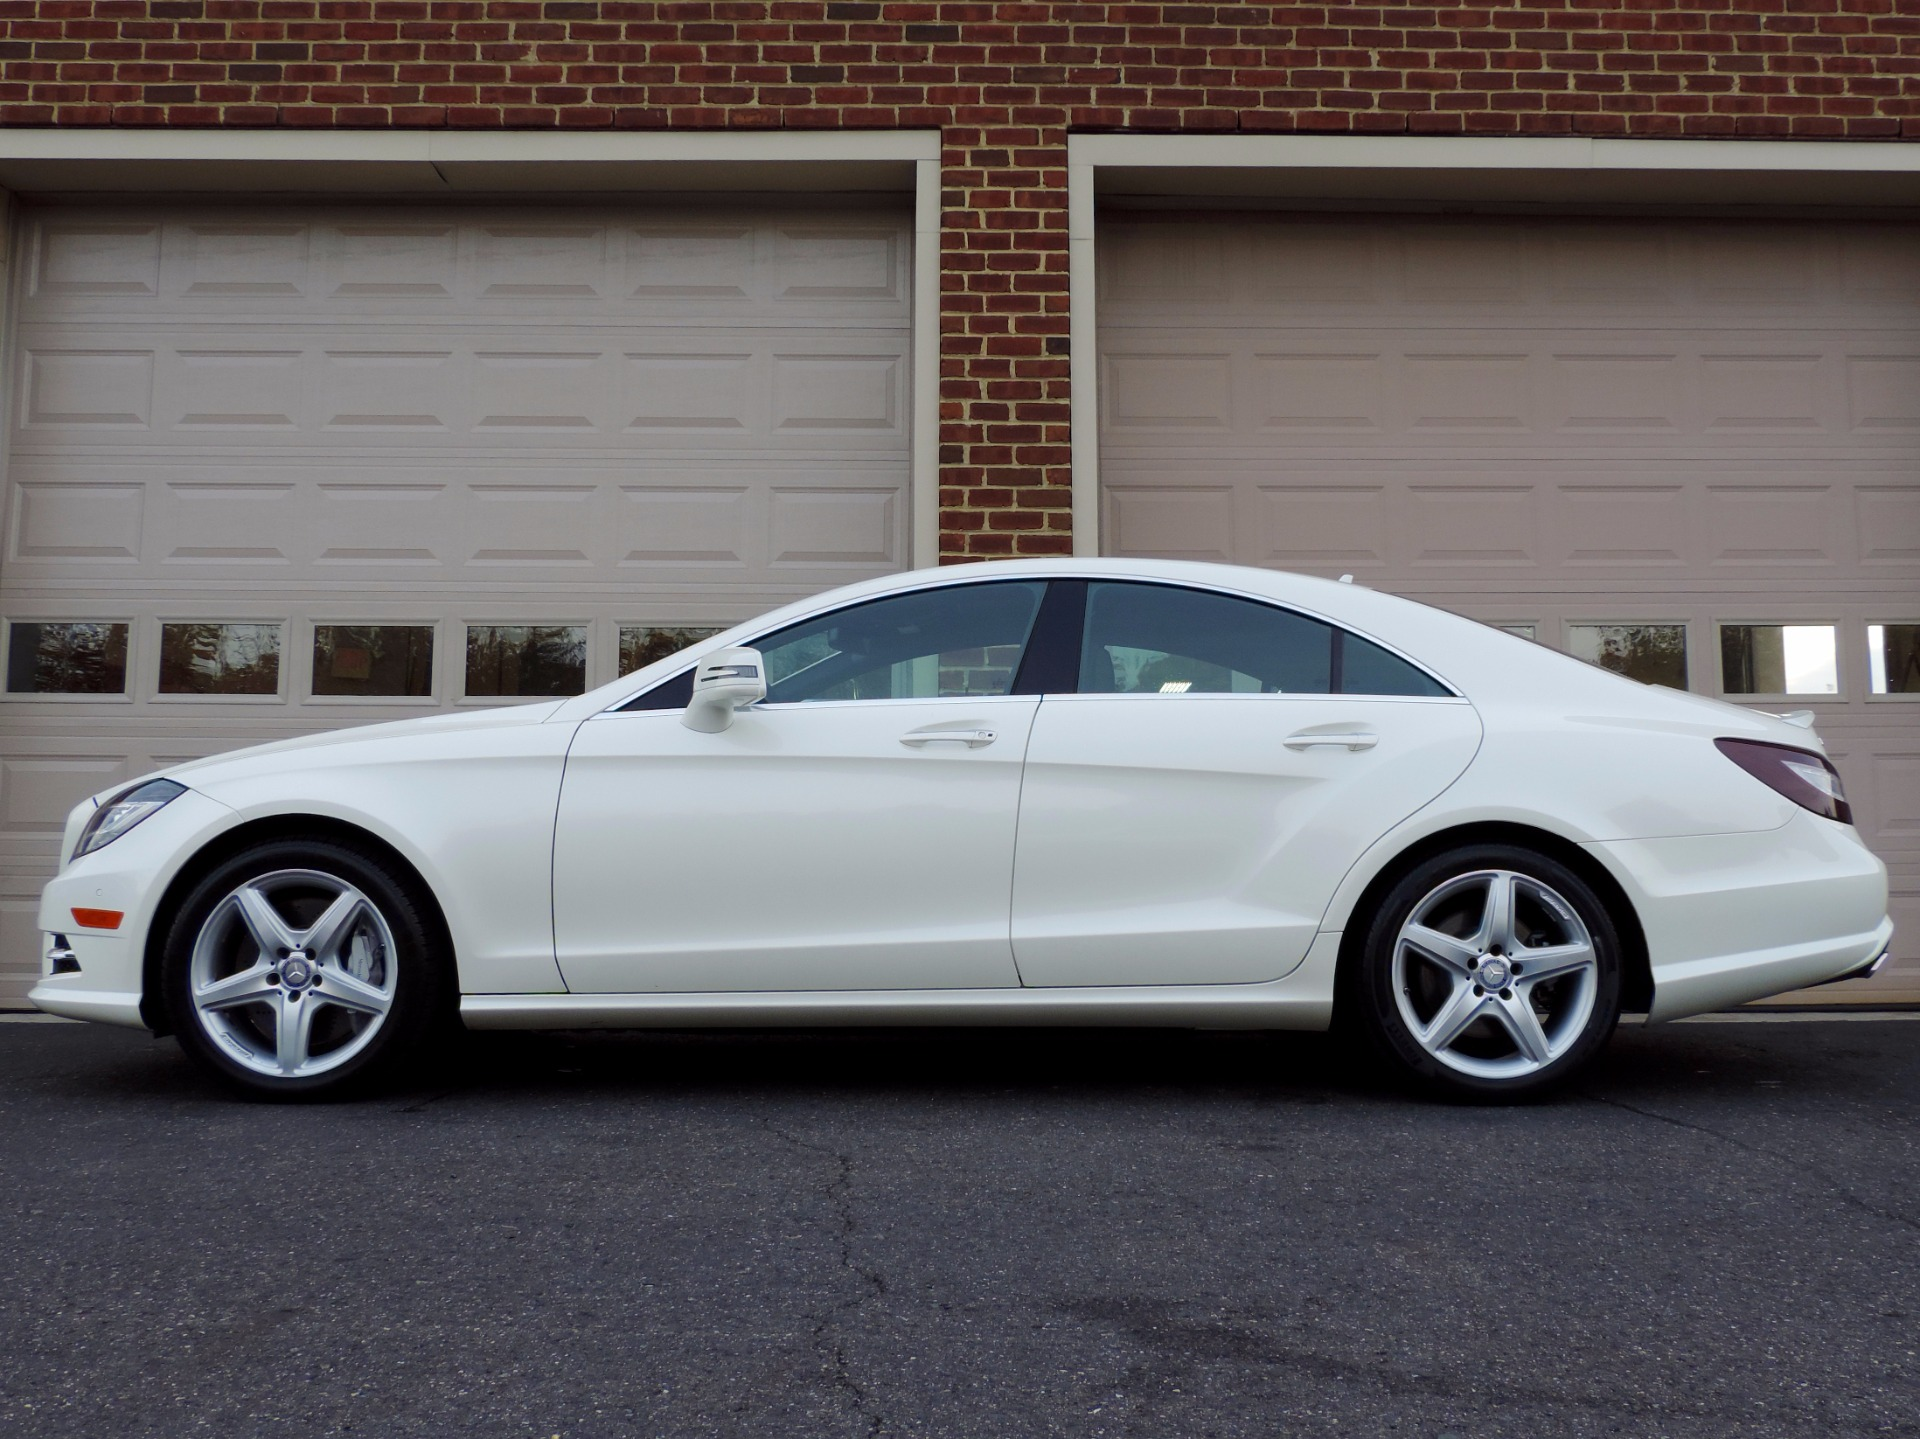 2014 mercedes benz cls cls 550 4matic stock 124882 for sale near edgewater park nj nj. Black Bedroom Furniture Sets. Home Design Ideas